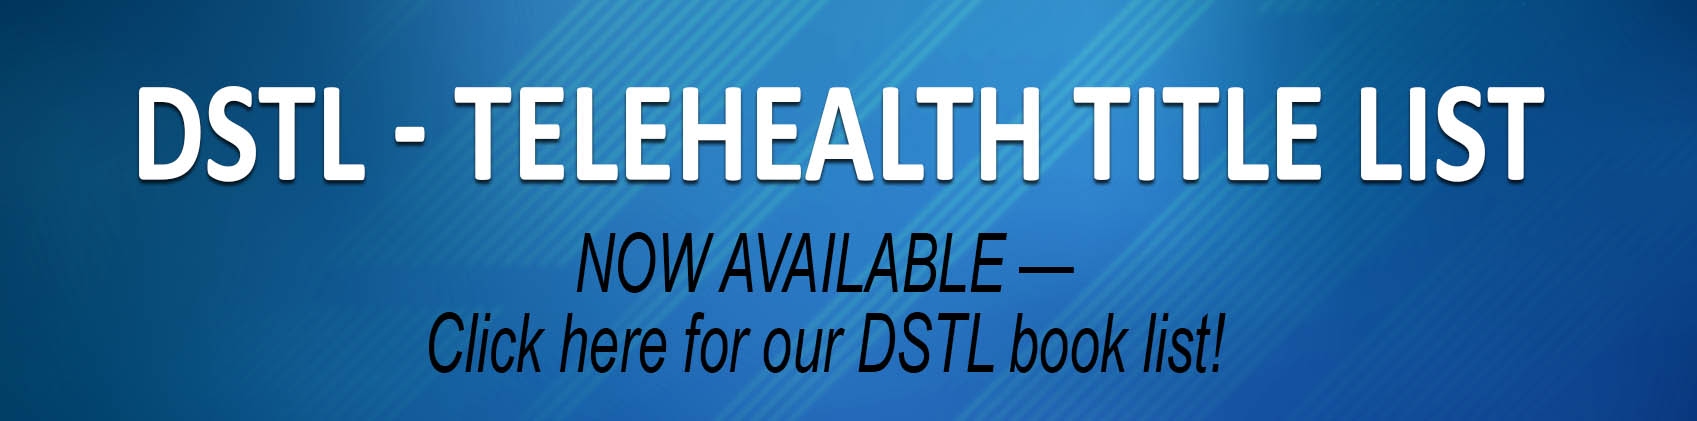 DSTL - Telehealth Title List